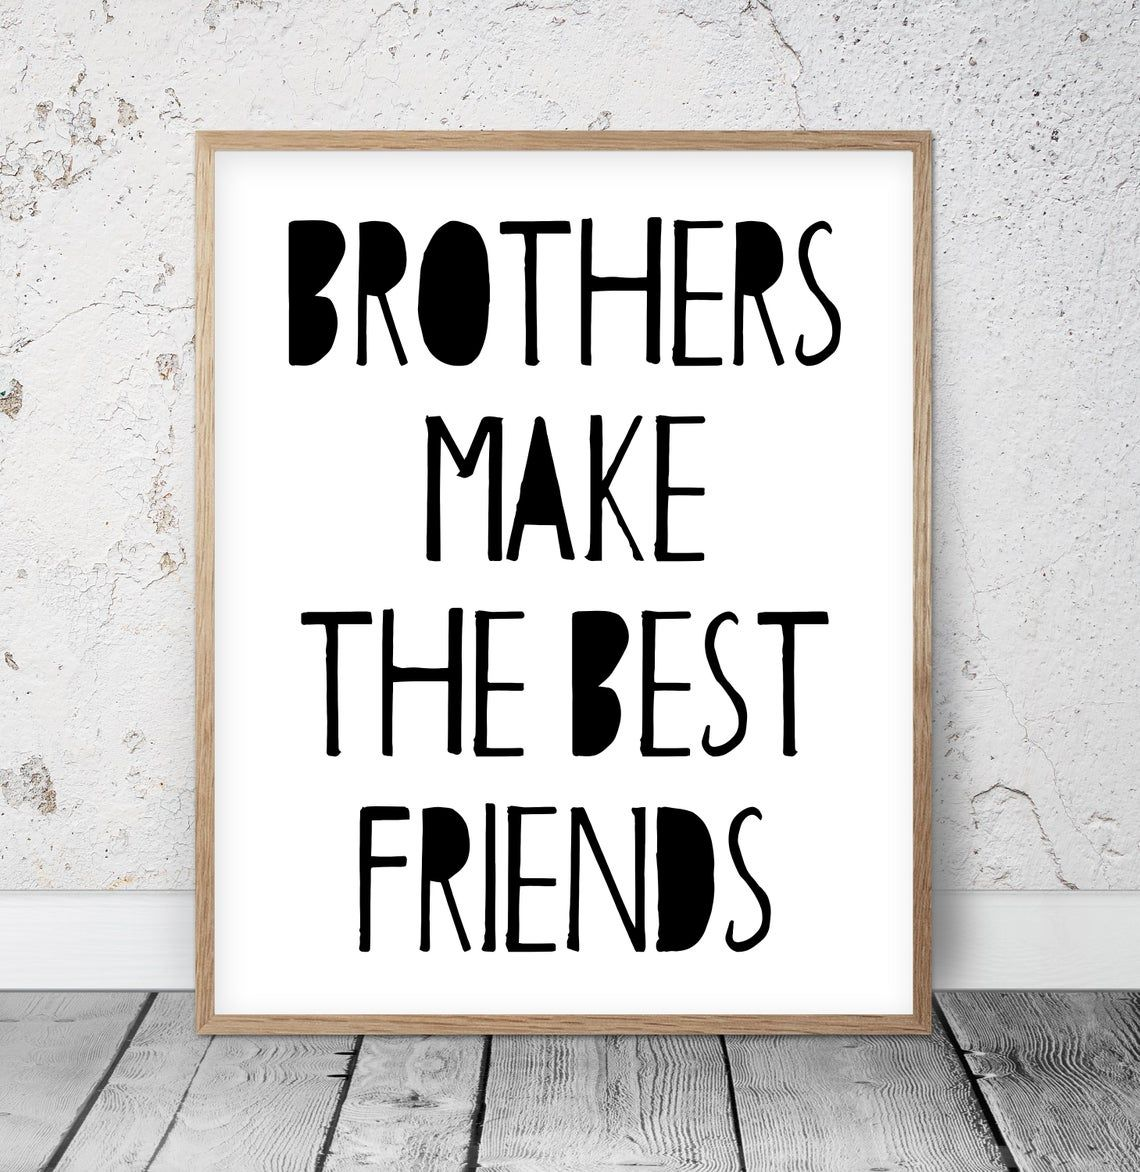 Brothers Make The Best Friends Boys Room Printable Wall Art Etsy Little Boys Rooms Kids Hangout Room Nursery Prints Boy